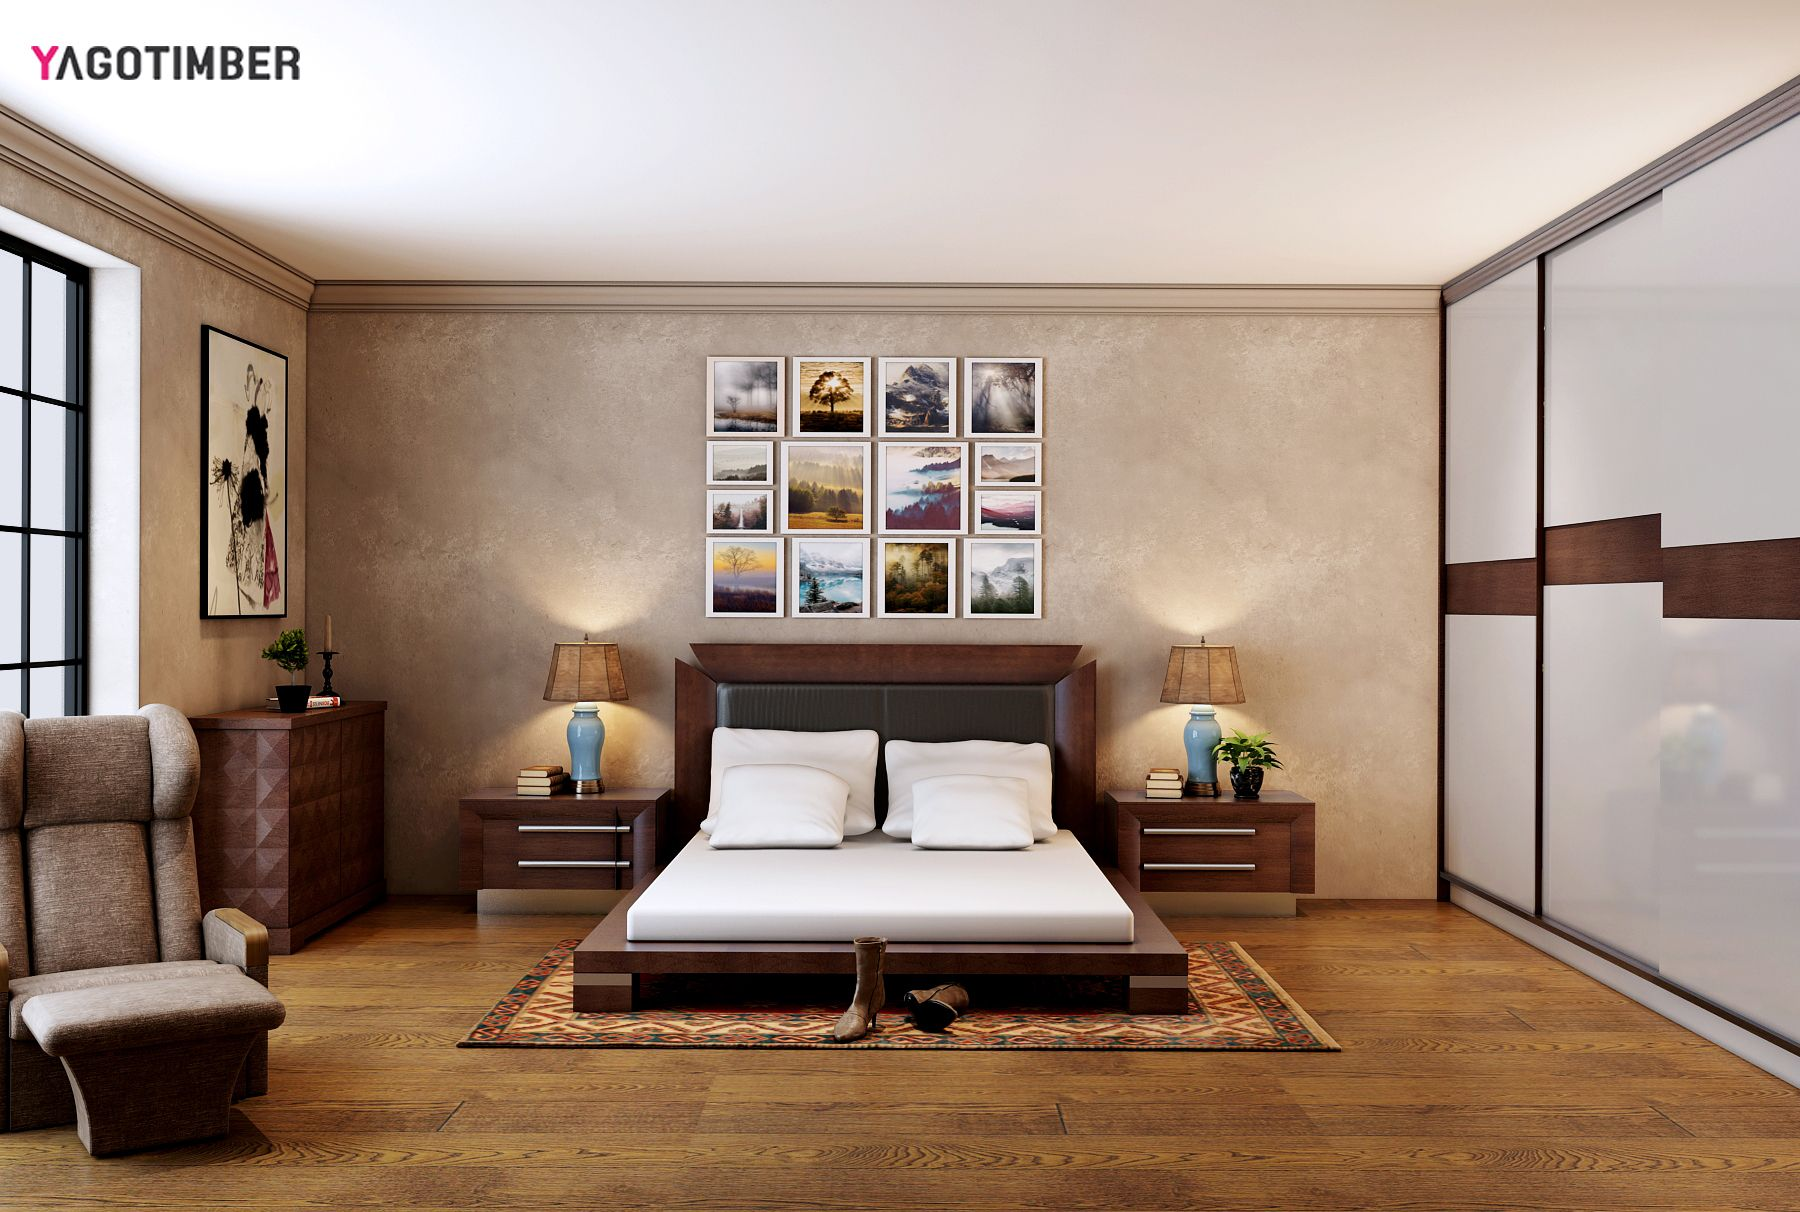 Designing Bedroom Get Latest Yagotimber's Bedroom Interior Design Looks For Your